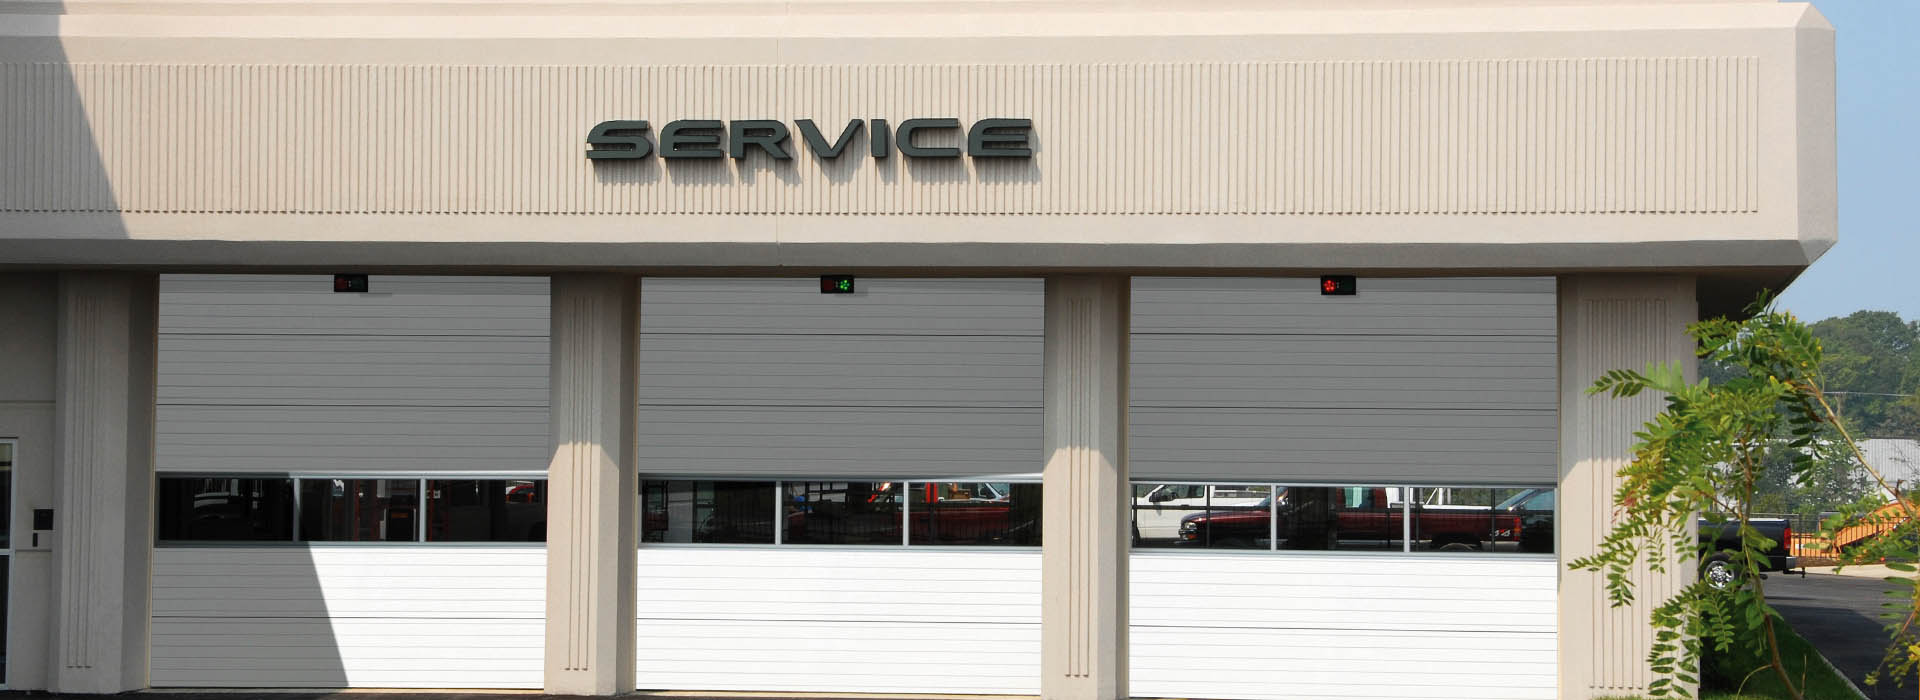 commercial door rockaway garage doors services and img durable